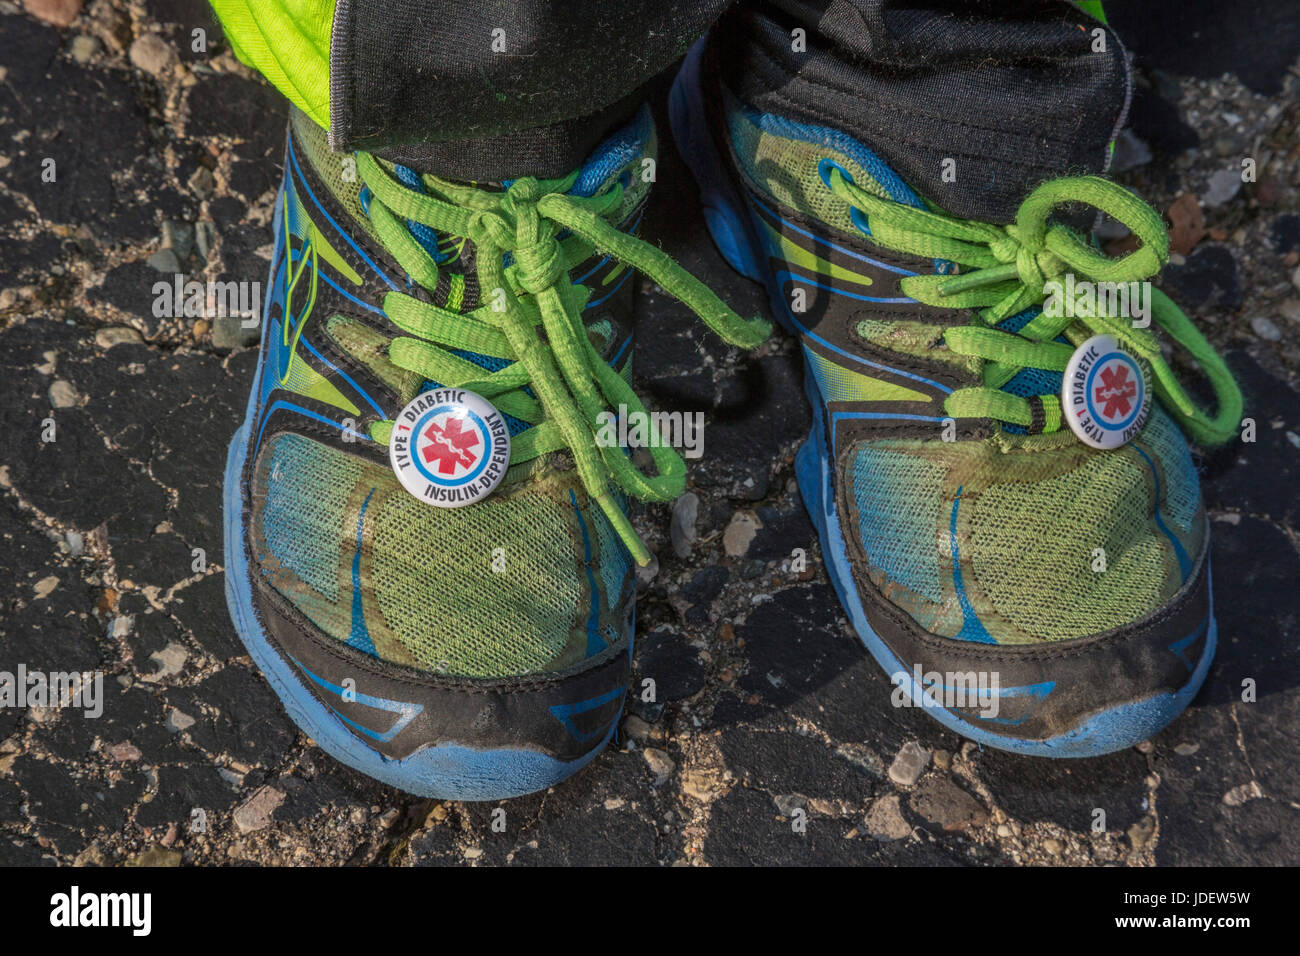 A six-year-old boy wears tags on his shoes warning that he has type 1 diabetes, also called juvenile diabetes. His - Stock Image